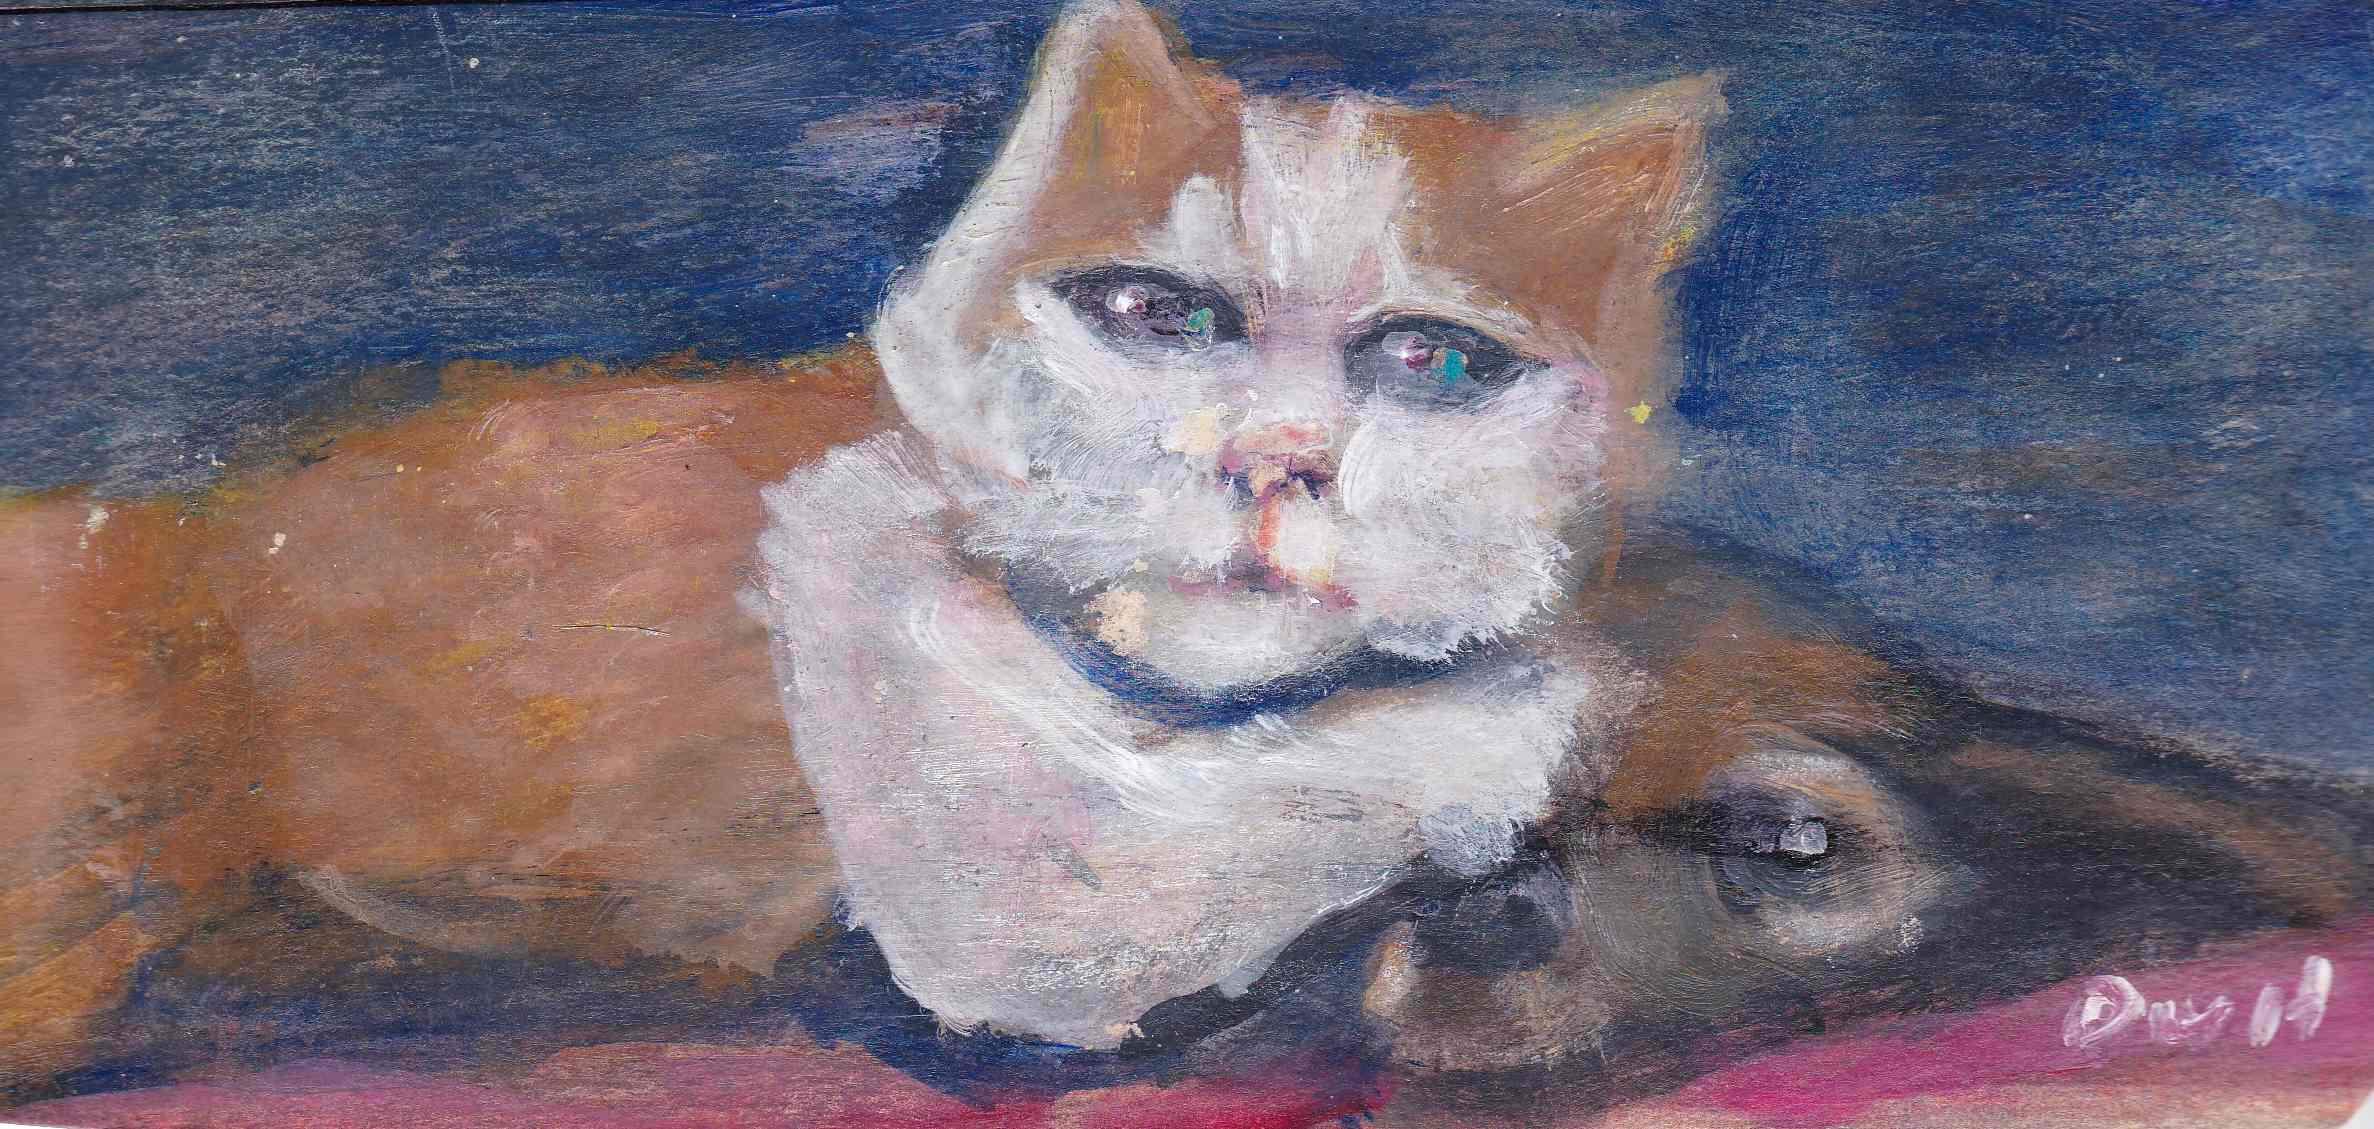 Cat Painting by Doug Hanna-IMG_20190101_0002 - Copy.jpg